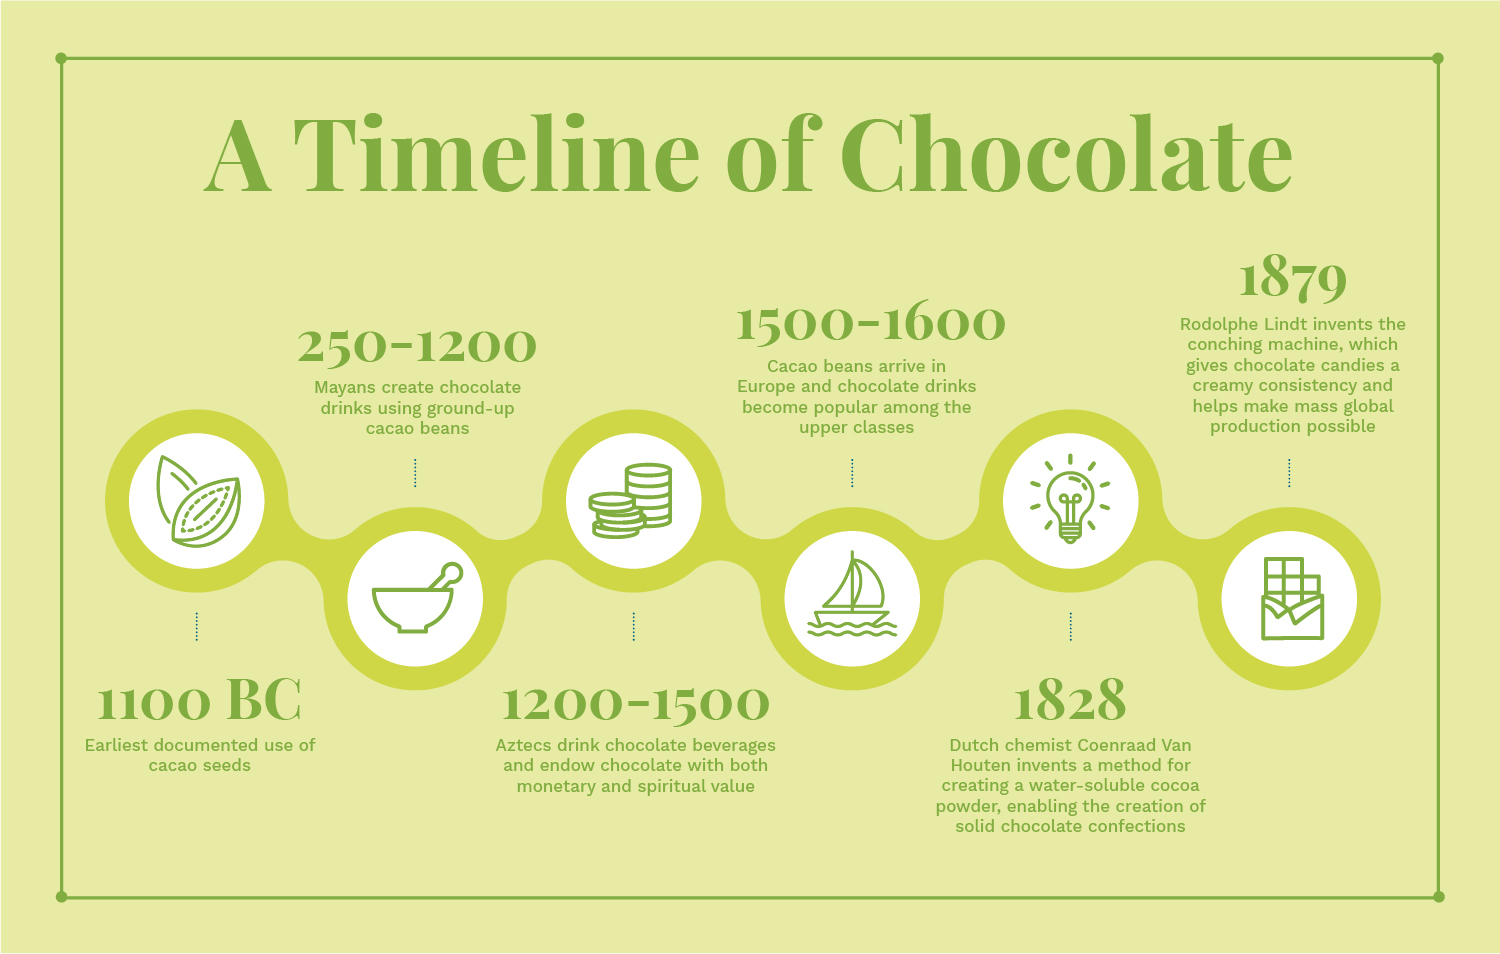 a timeline of chocolate